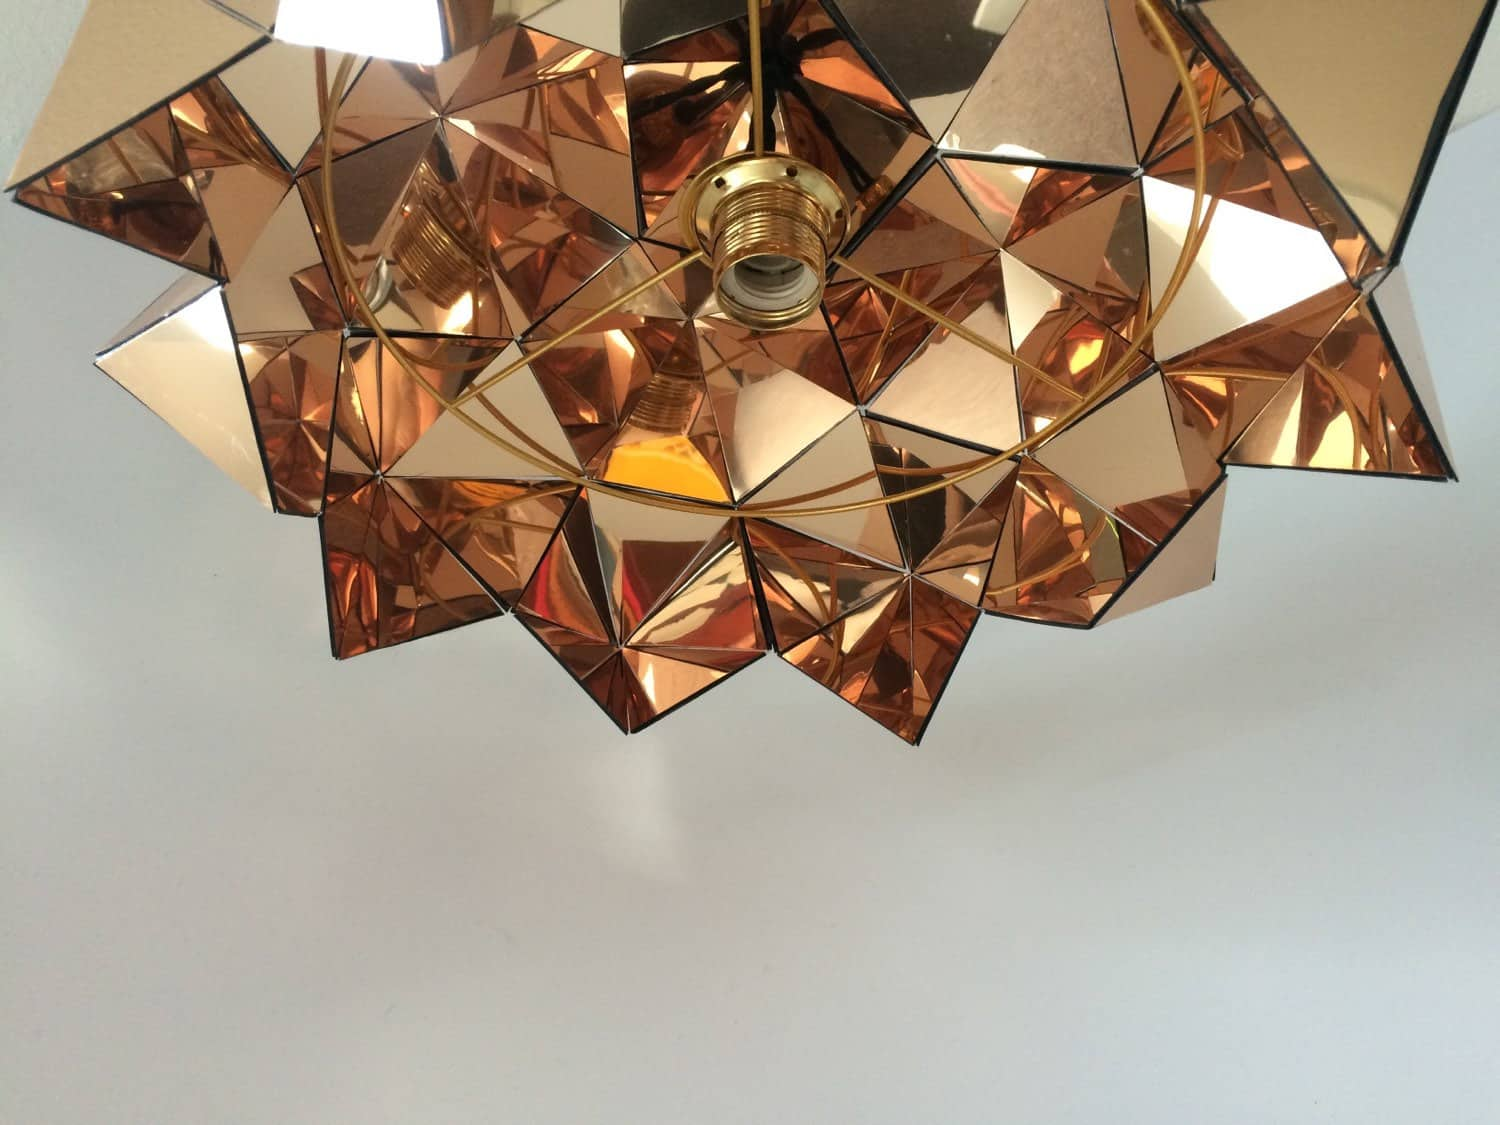 Golden Mirrored Pendant Light Sculpture